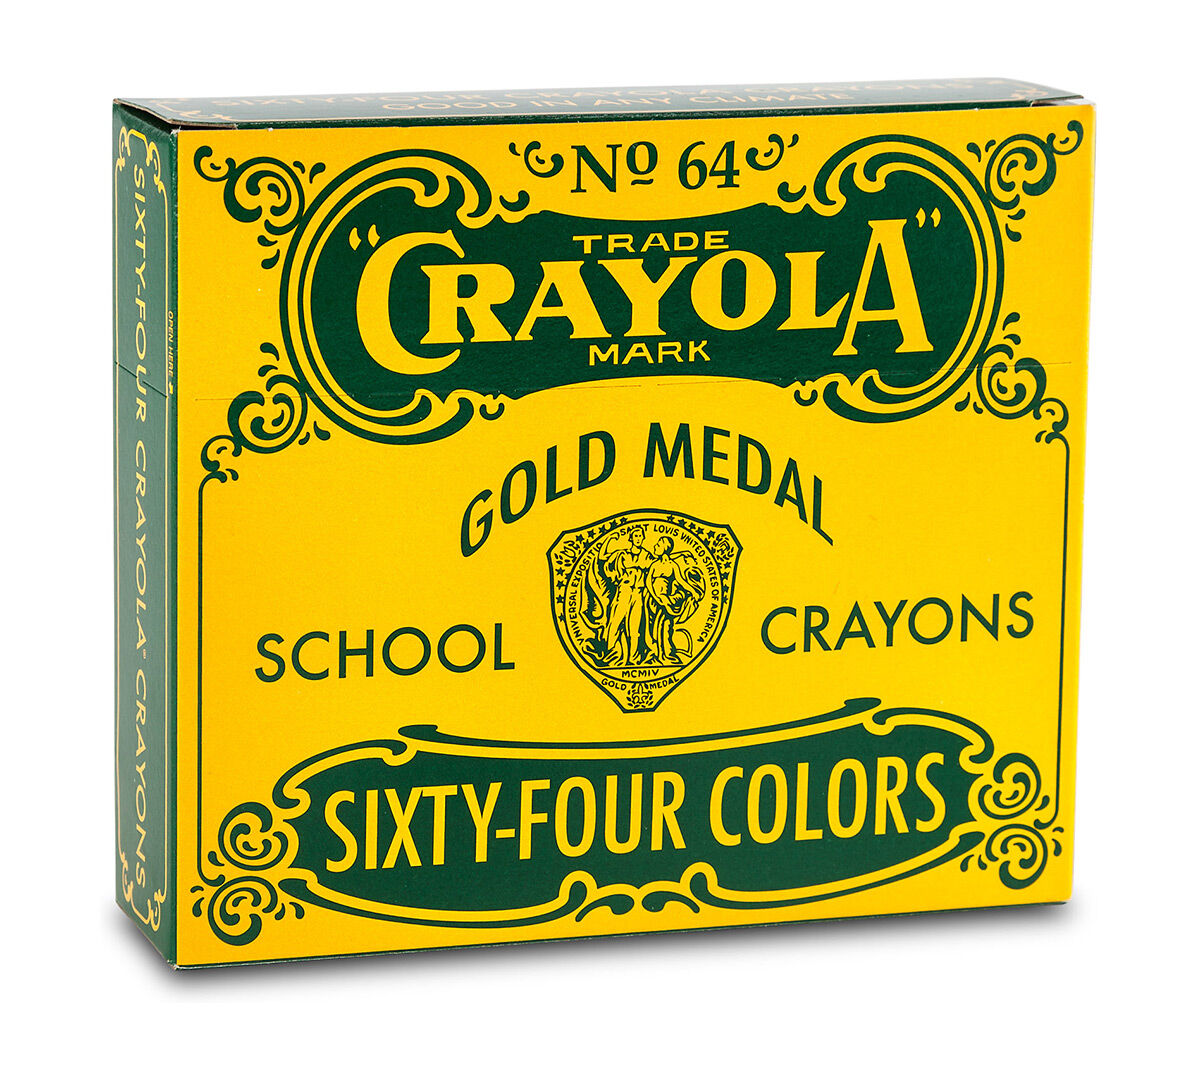 Vintage Box of 64 Crayons - Crayola